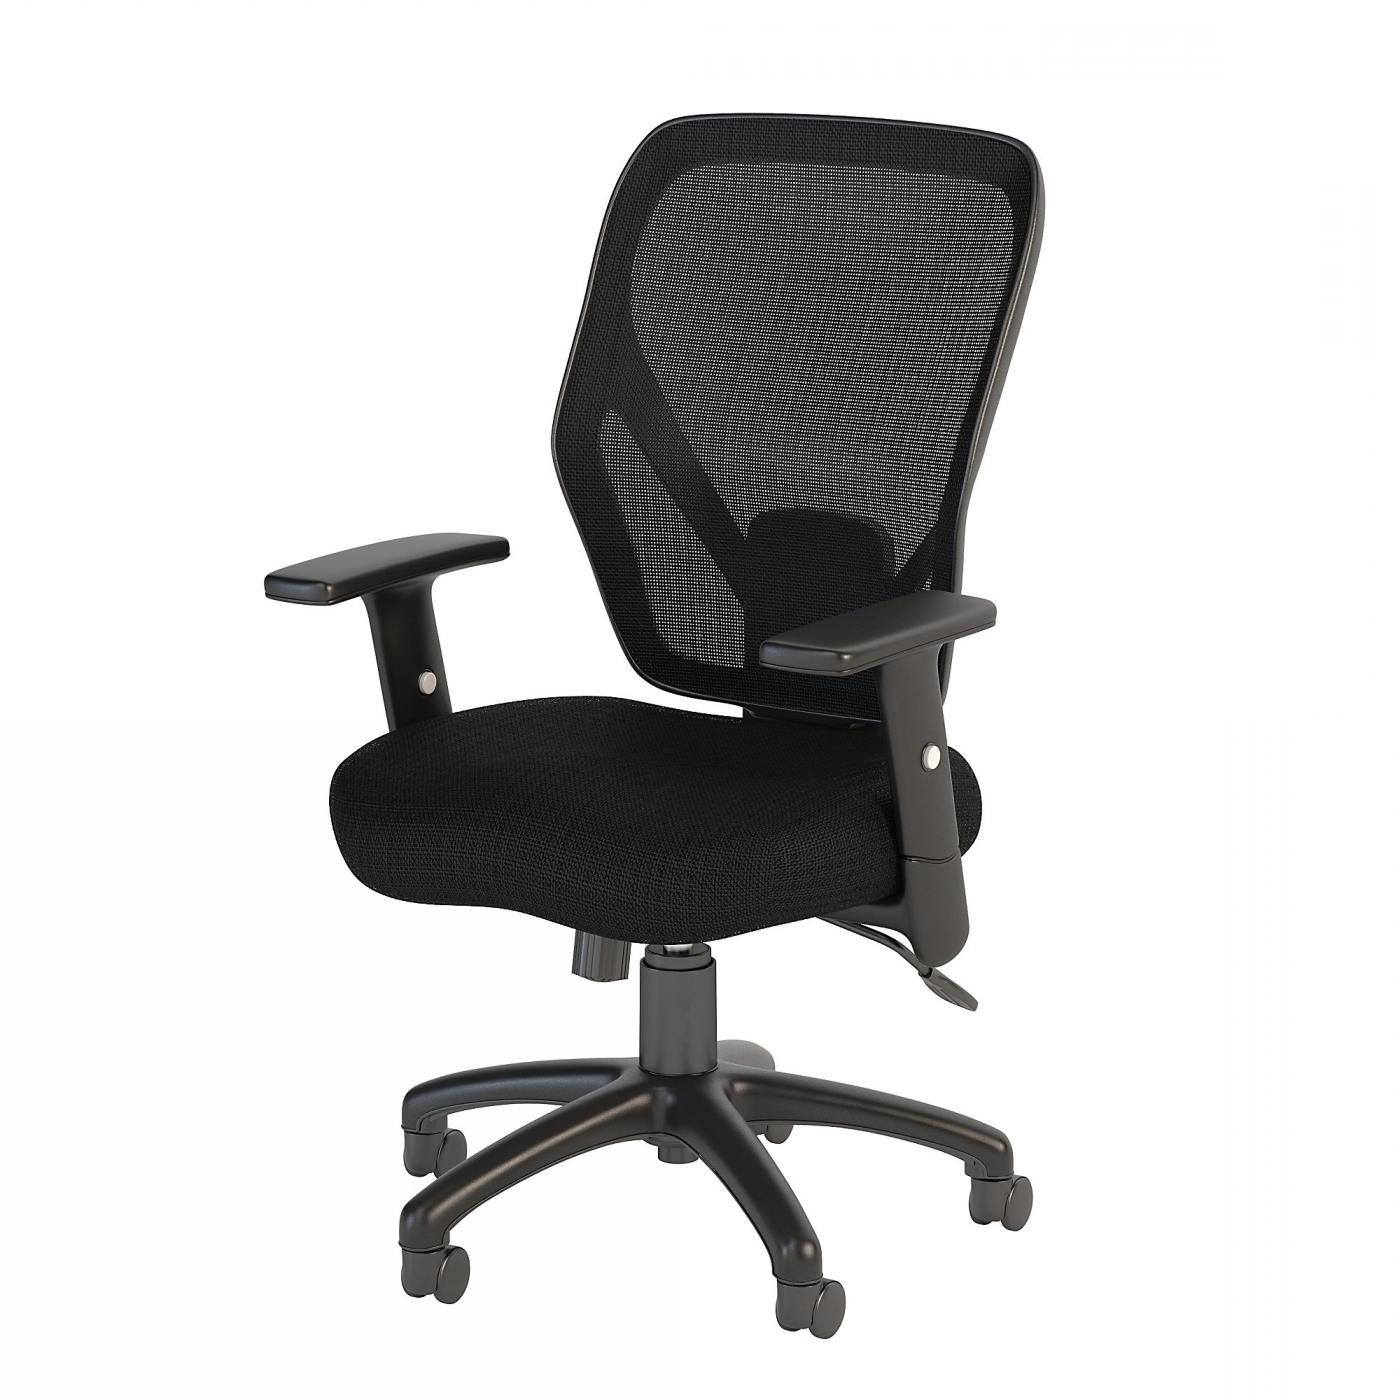 <font color=#c60><b>BUSH BUSINESS FURNITURE ACCORD MESH BACK OFFICE CHAIR. FREE SHIPPING</font></b> </font></b></font></b>